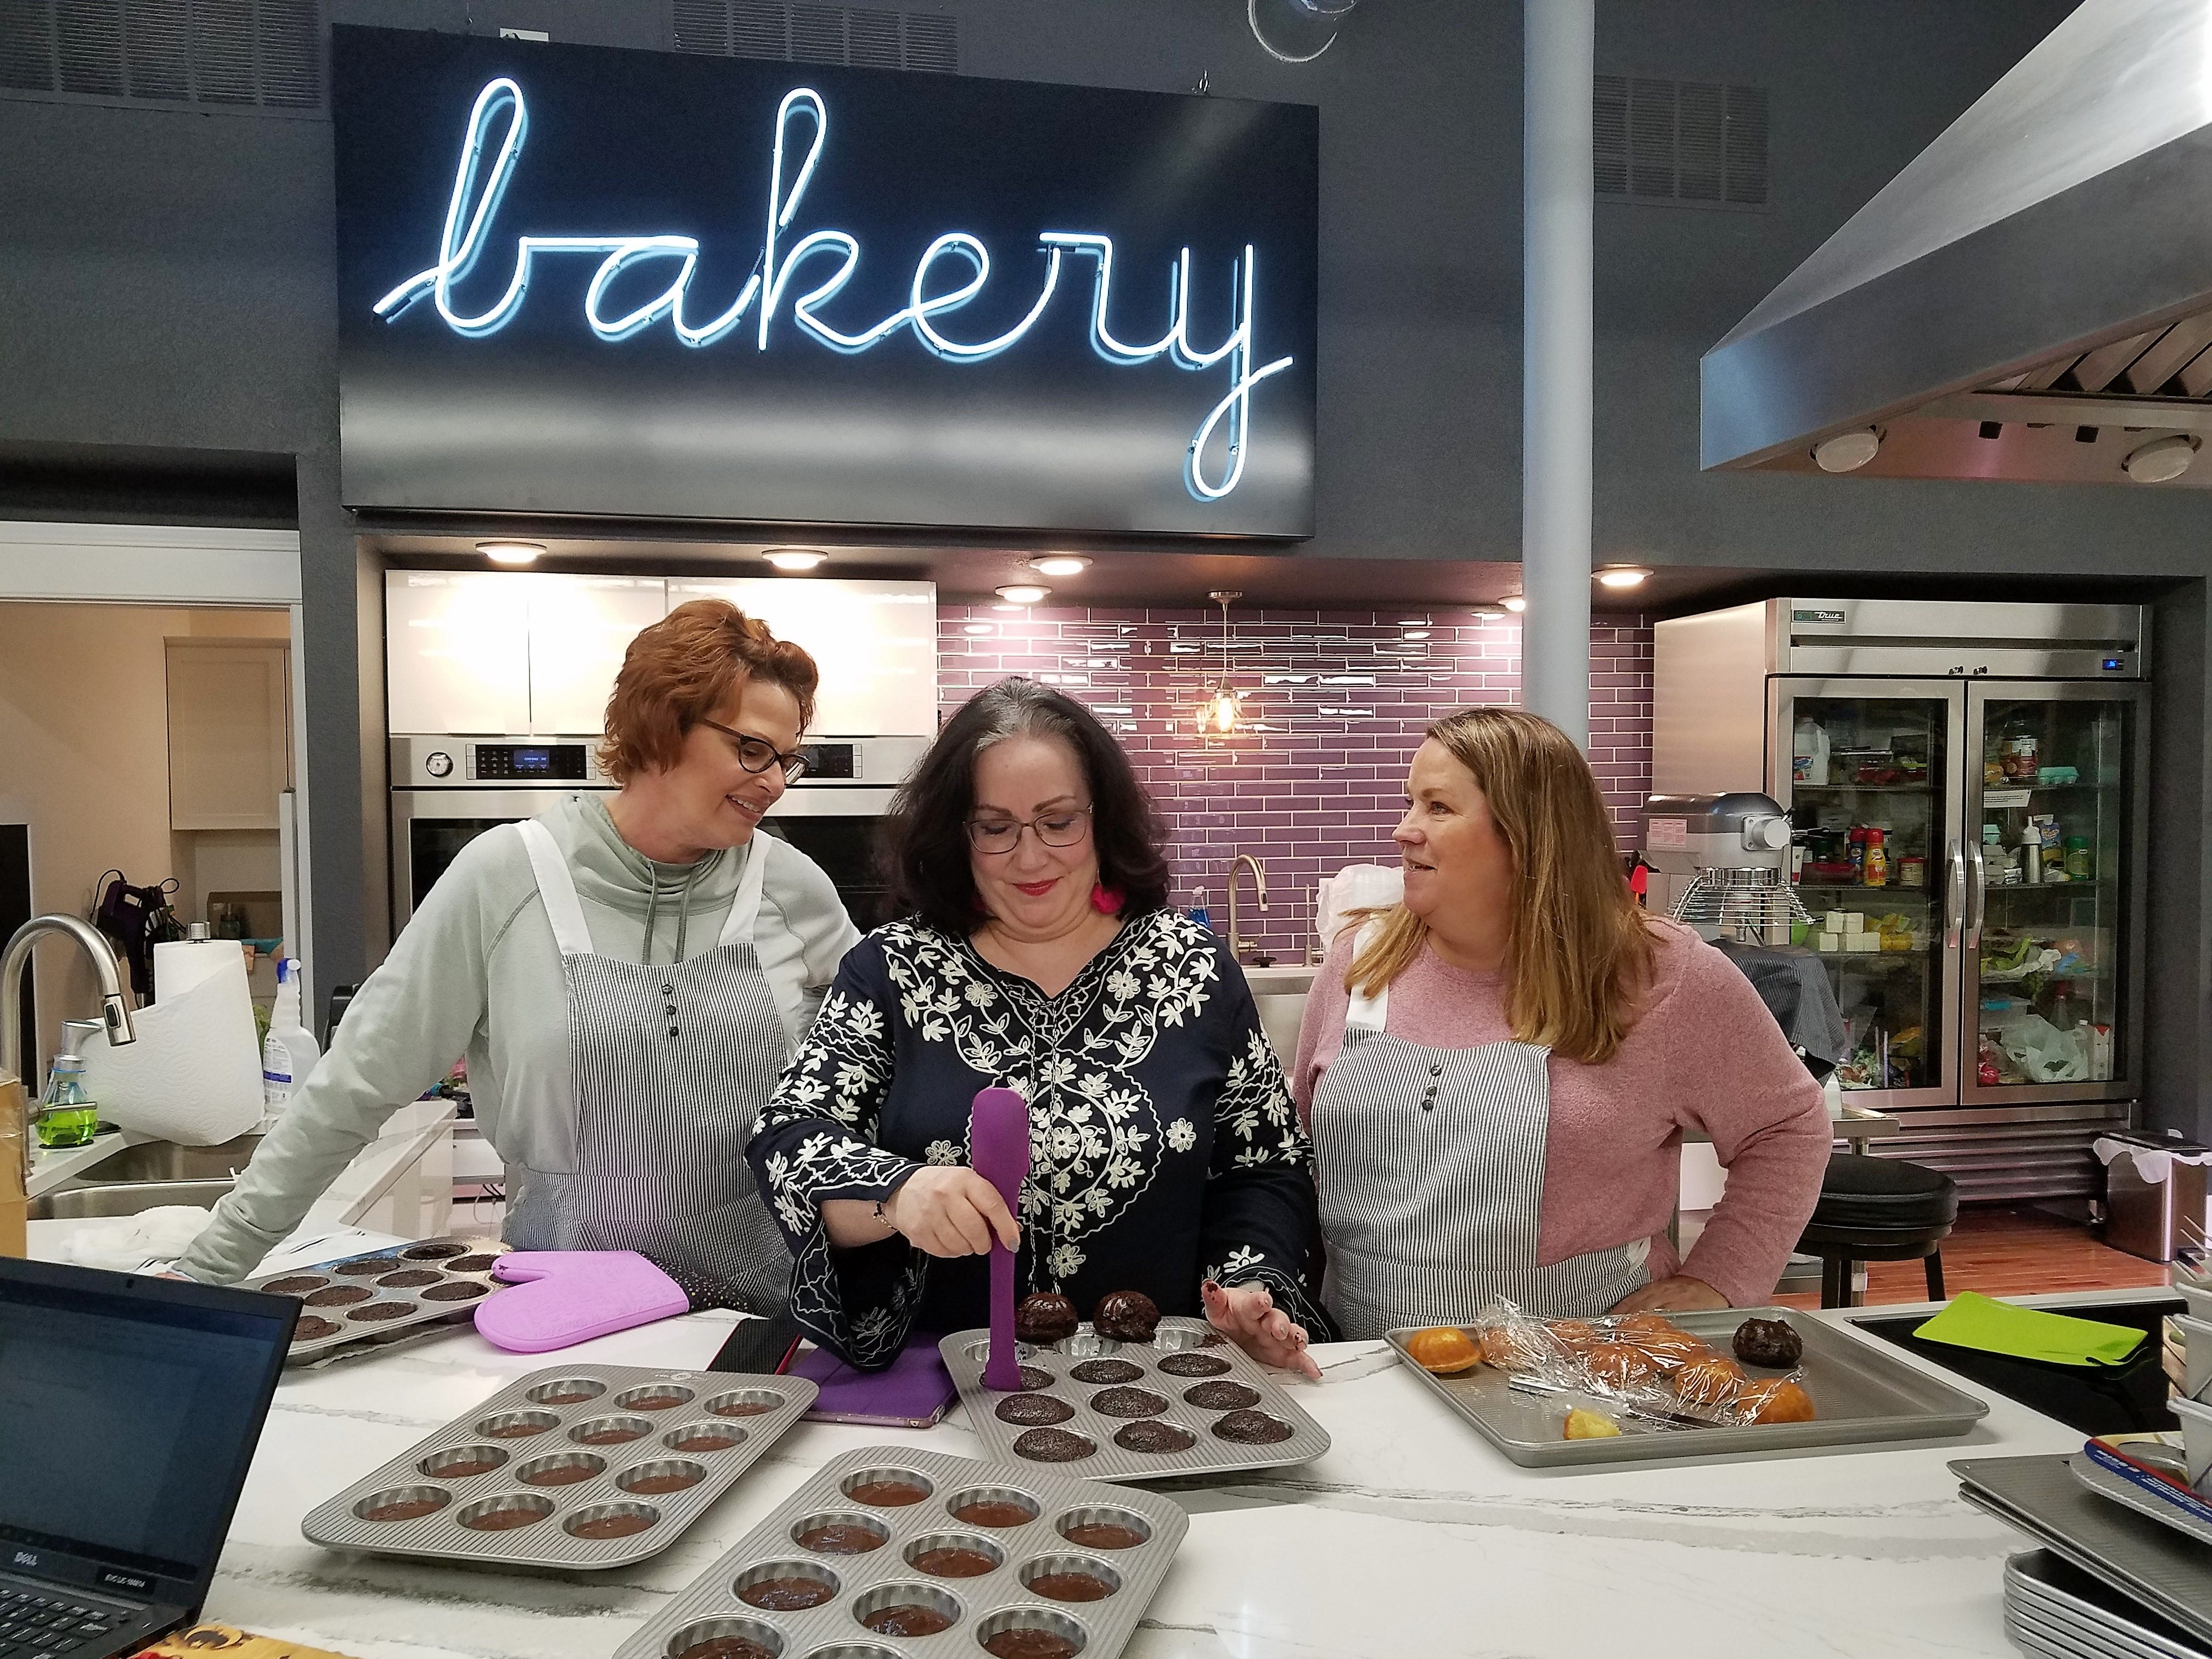 Capers Emporium owner Mary Beth Guard, center, with Jennifer Miller, left, and Diana Mathews, bake up chocolate and vanilla Capers Cakes in the Capers kitchen.